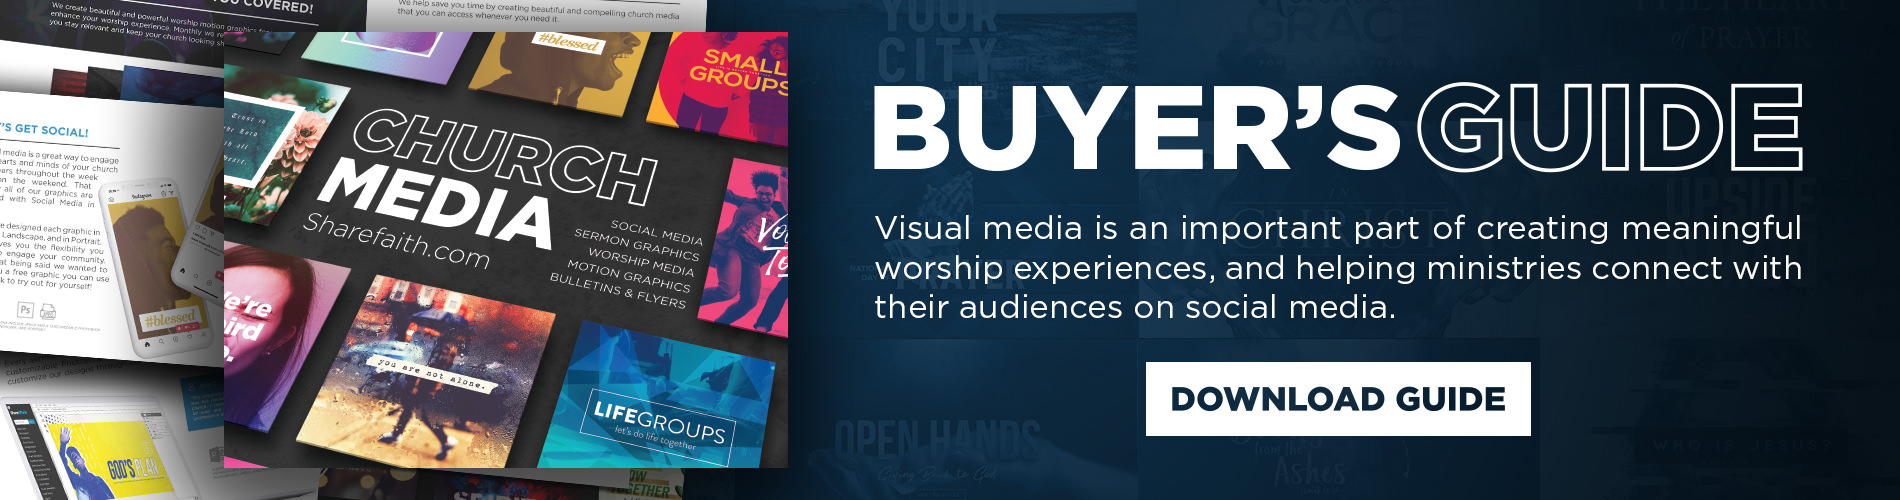 Church Media Buyer's Guide